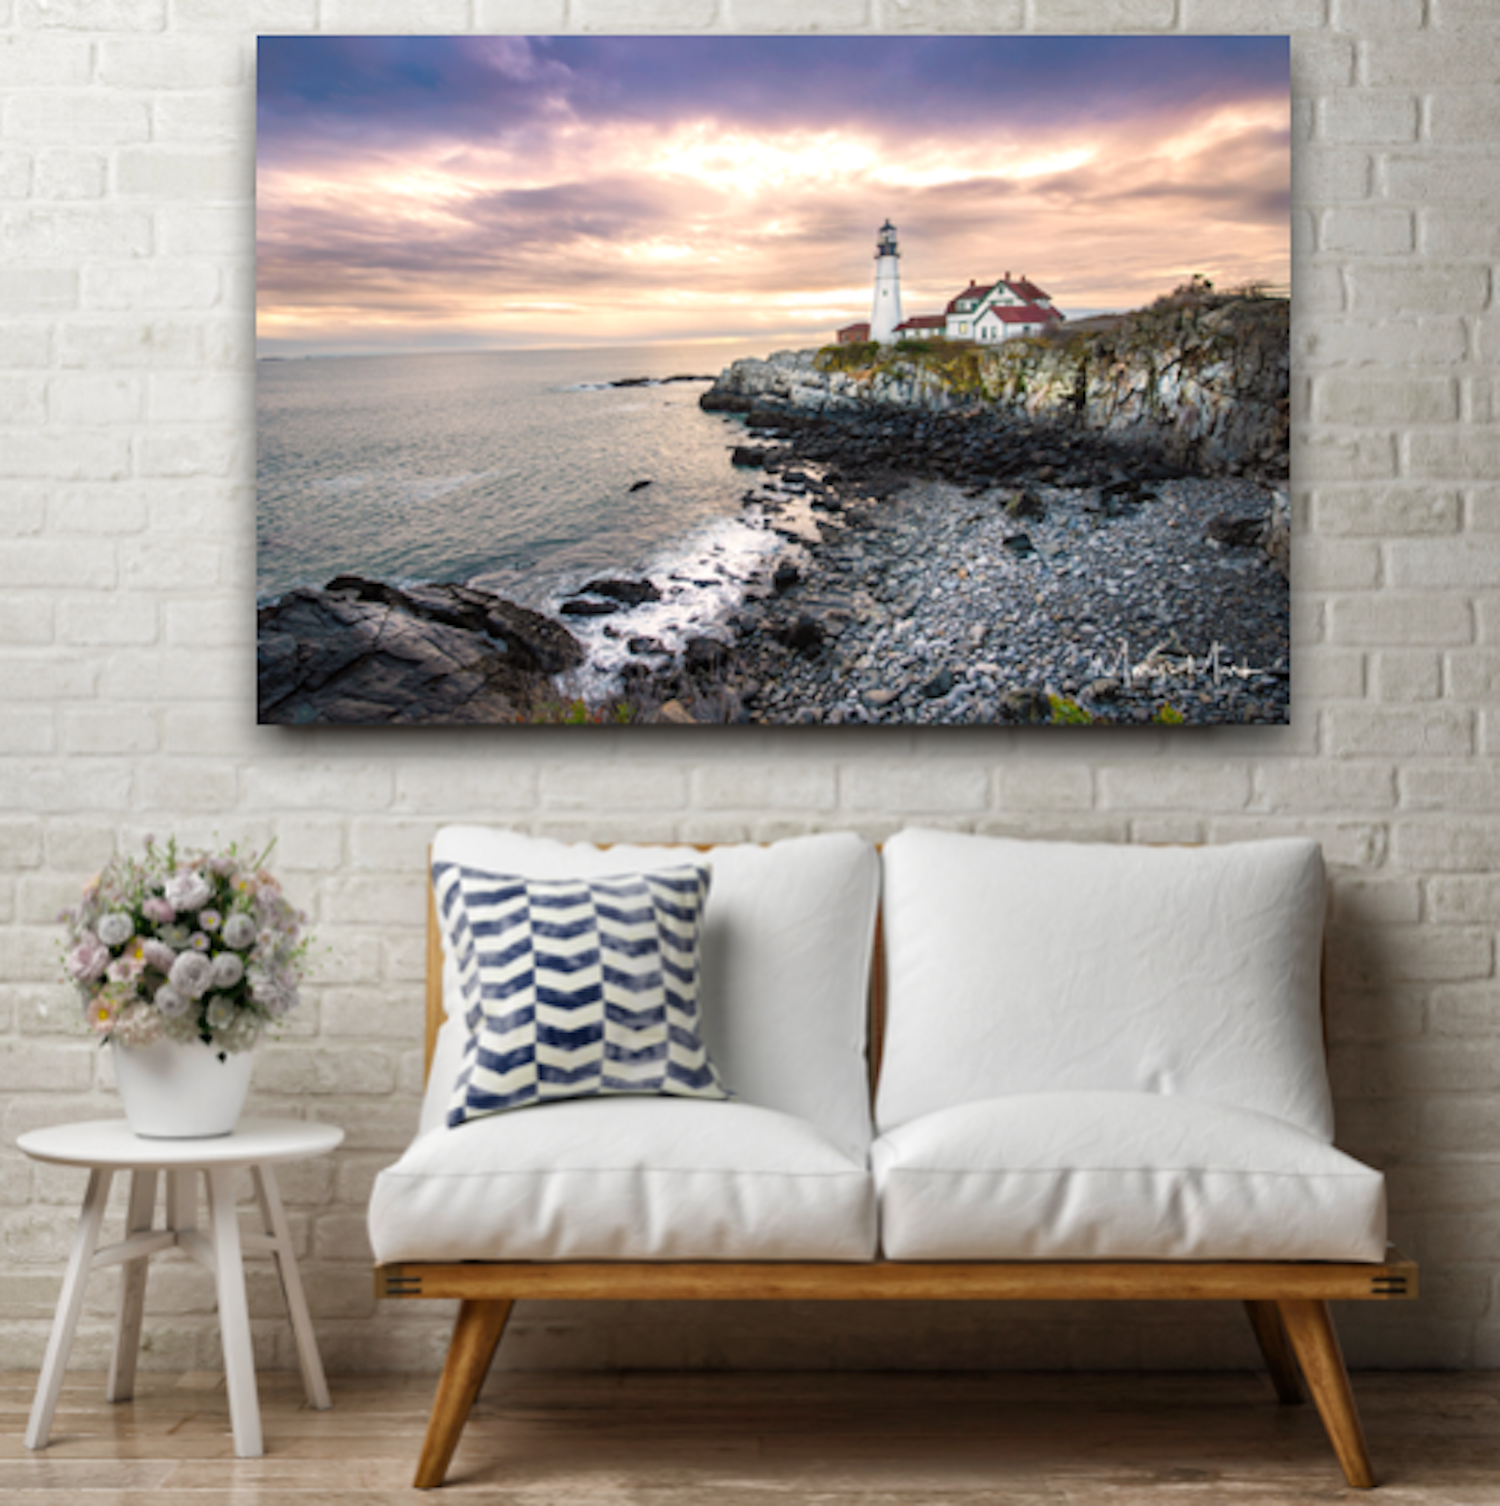 Fine Art Photograph of a Lighthouse in Portland Maine by Mary Parkhill of Mary's Mark Photography.png